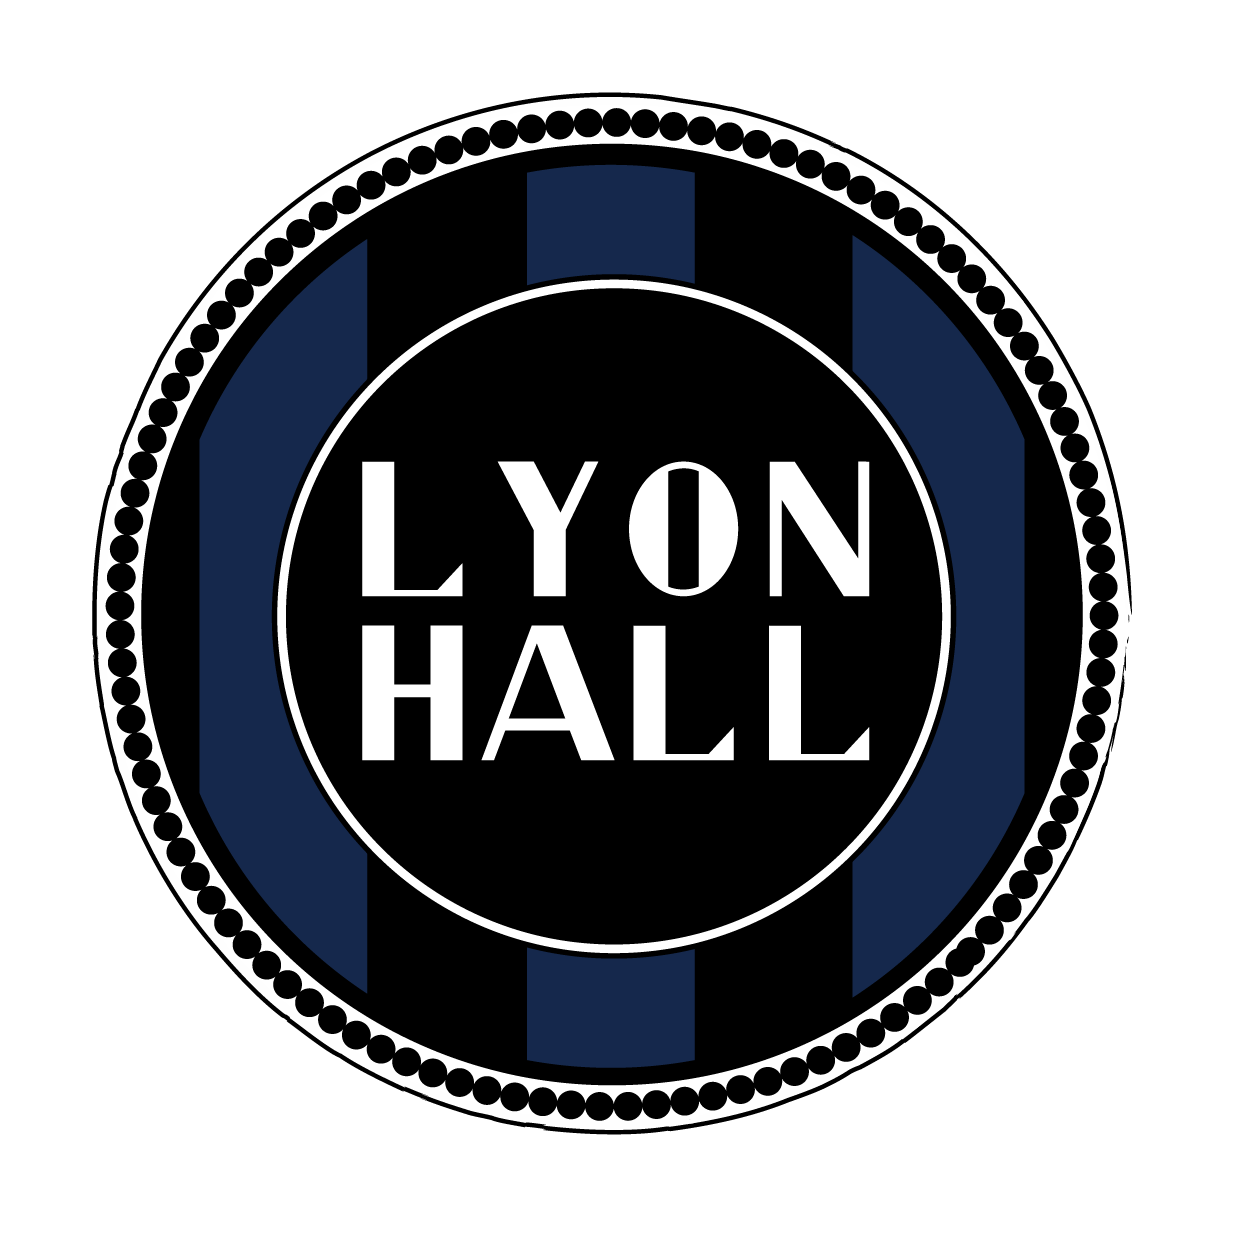 Lyon Hall.png